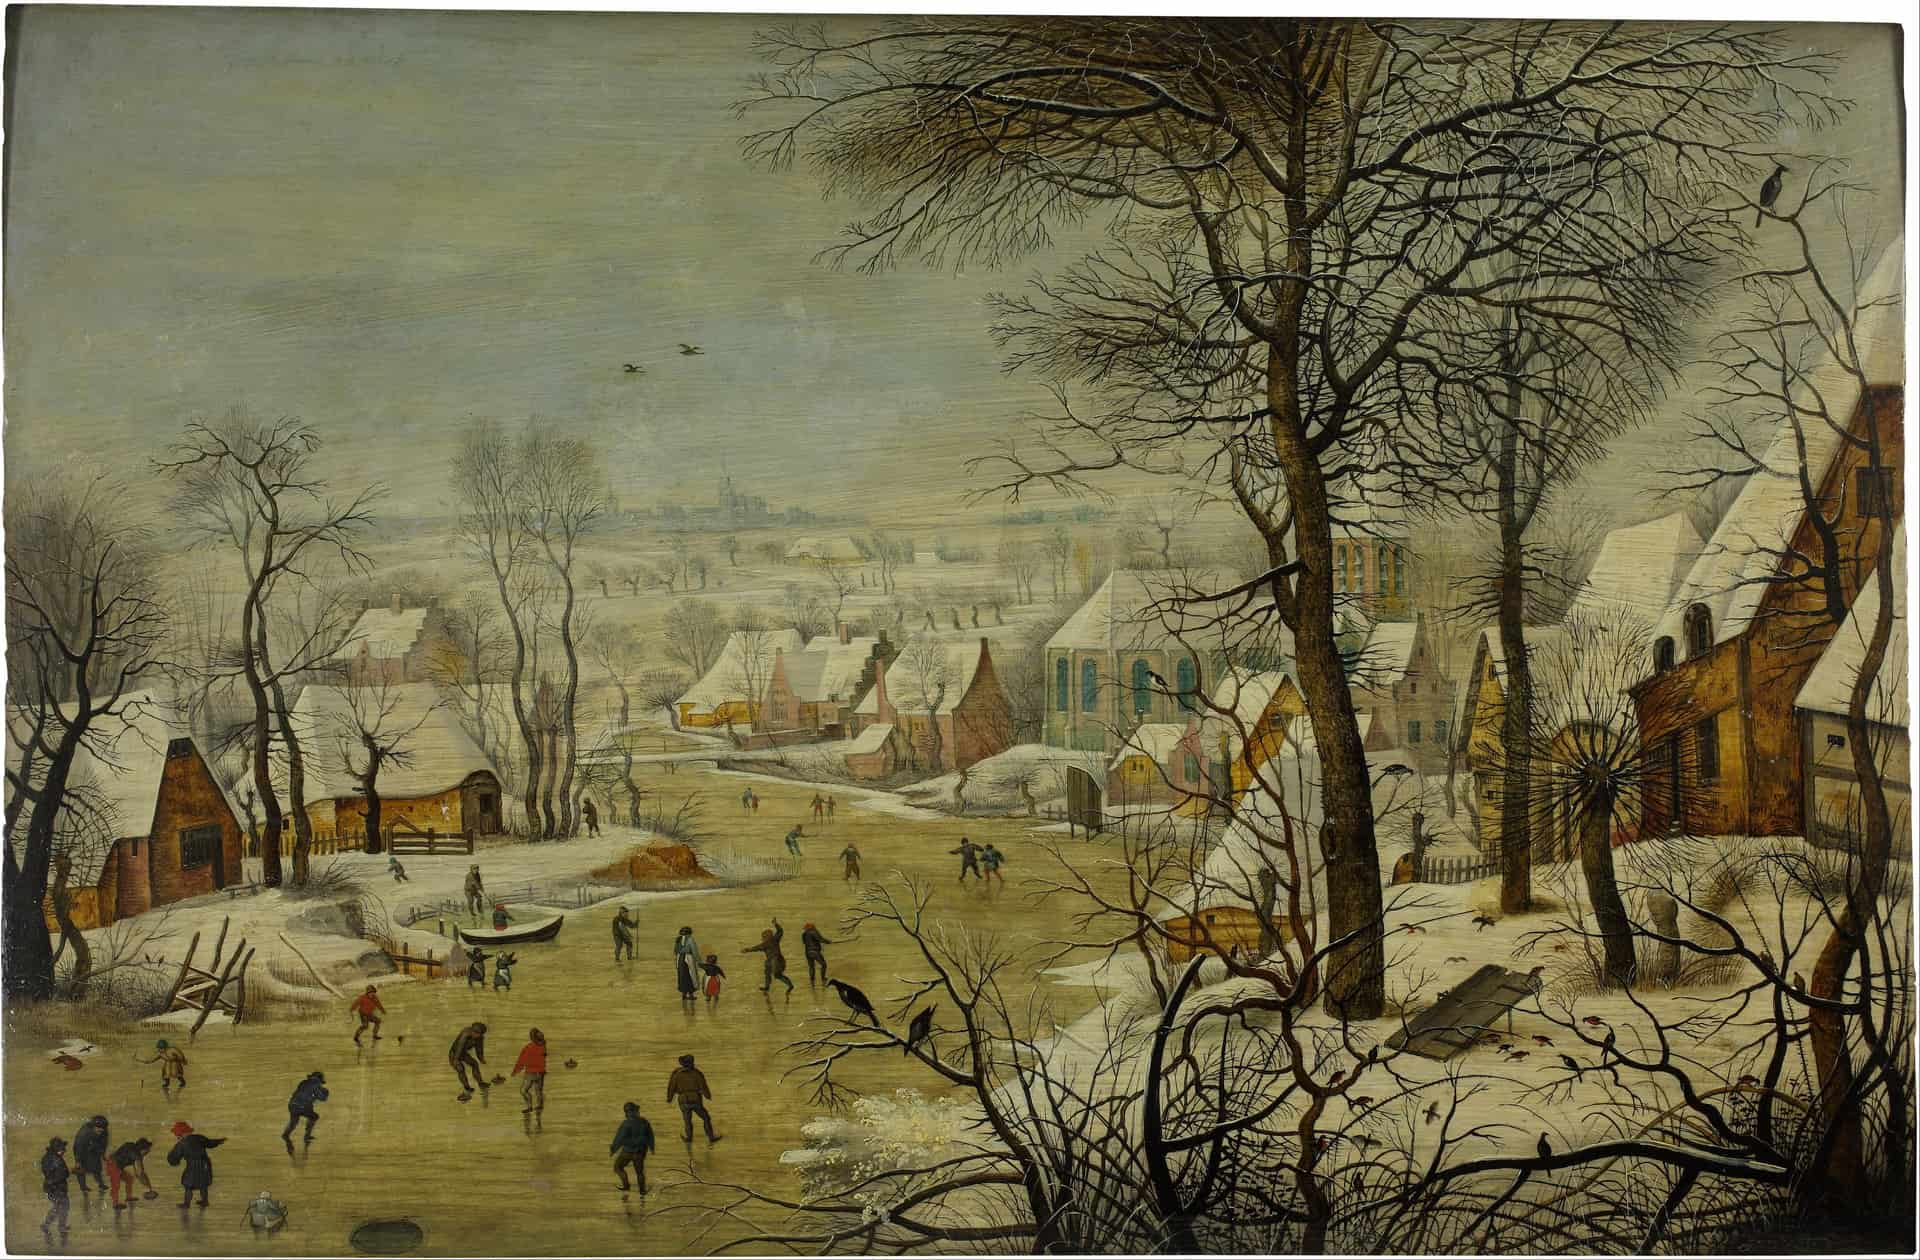 Pieter Brueghel the Younger: Winter Landscape with a Bird Trap. 1565